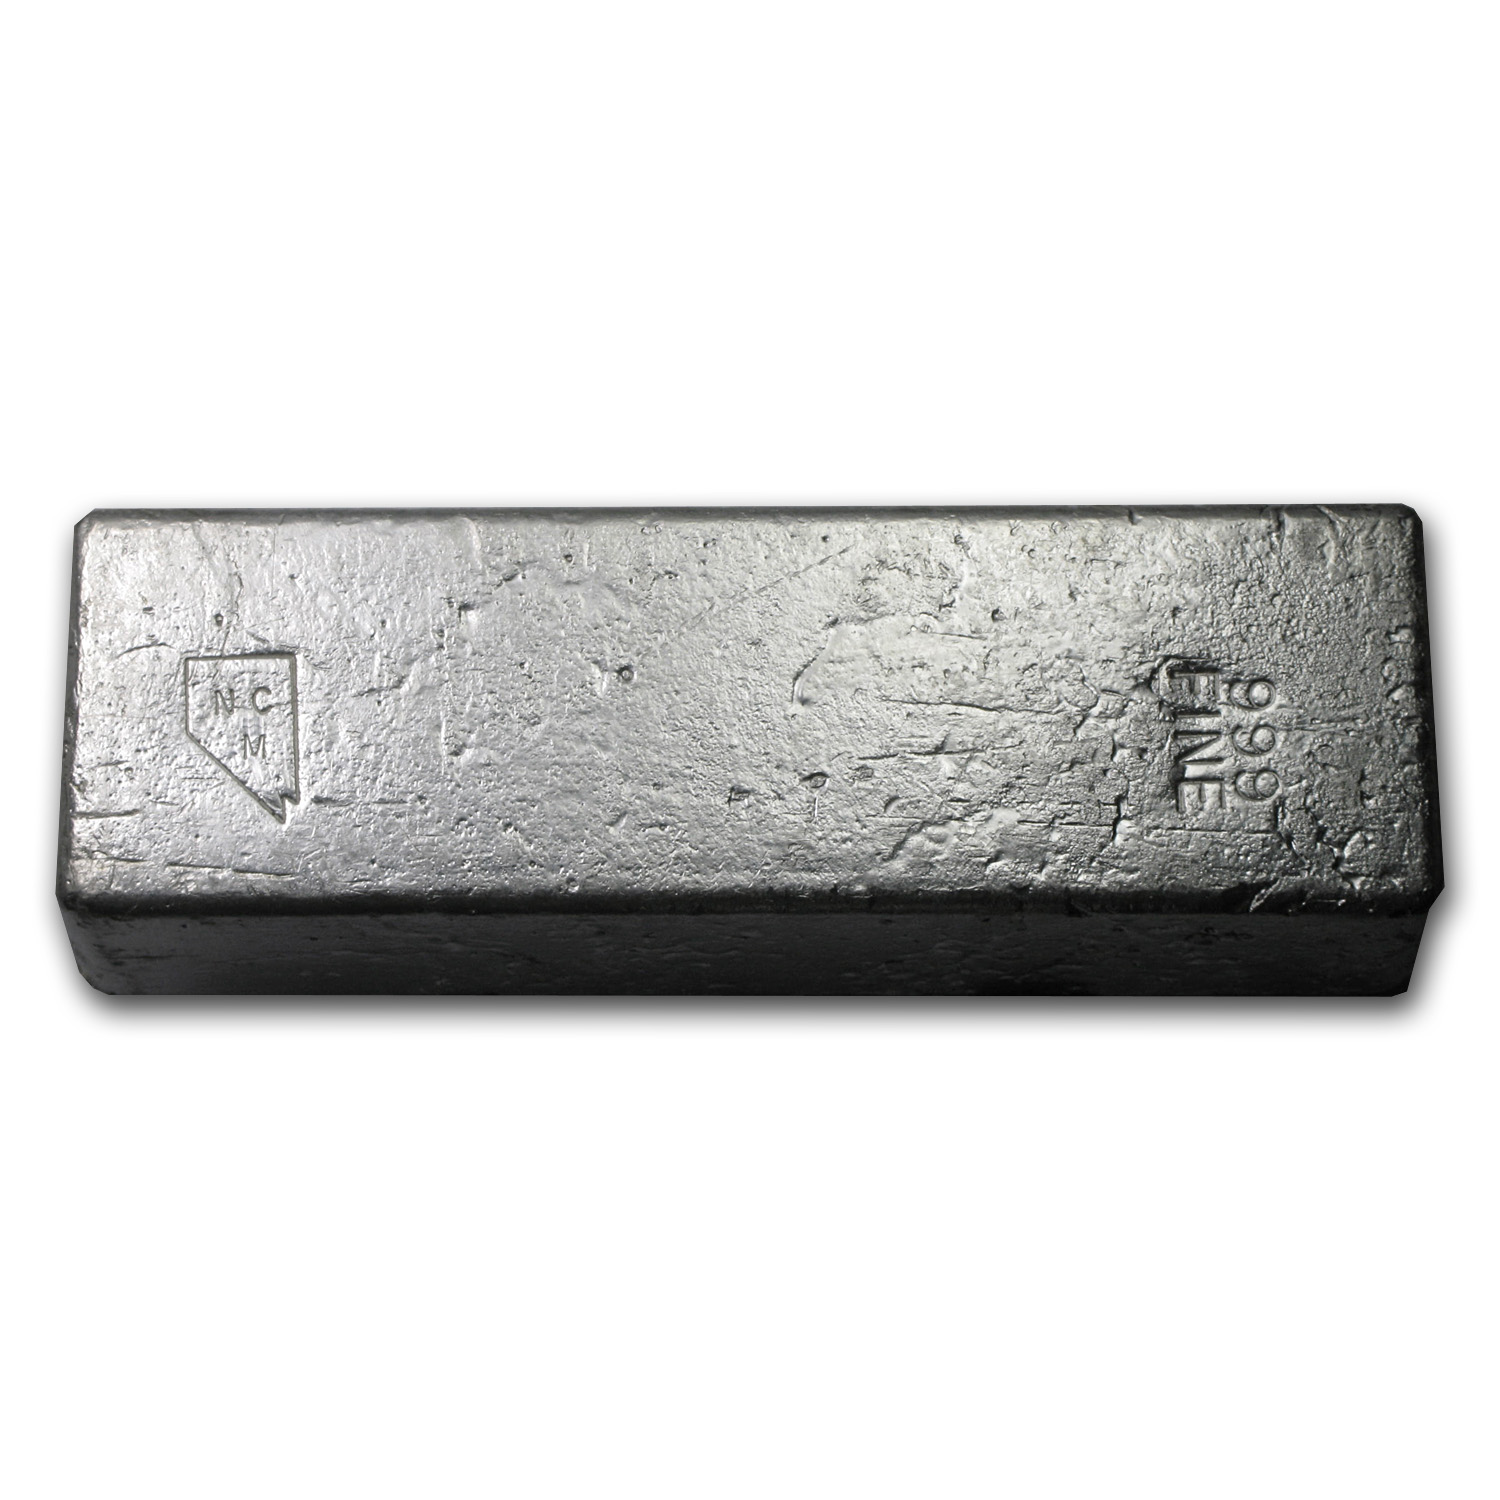 101.00 oz Silver Bars - Nevada Coin Mart